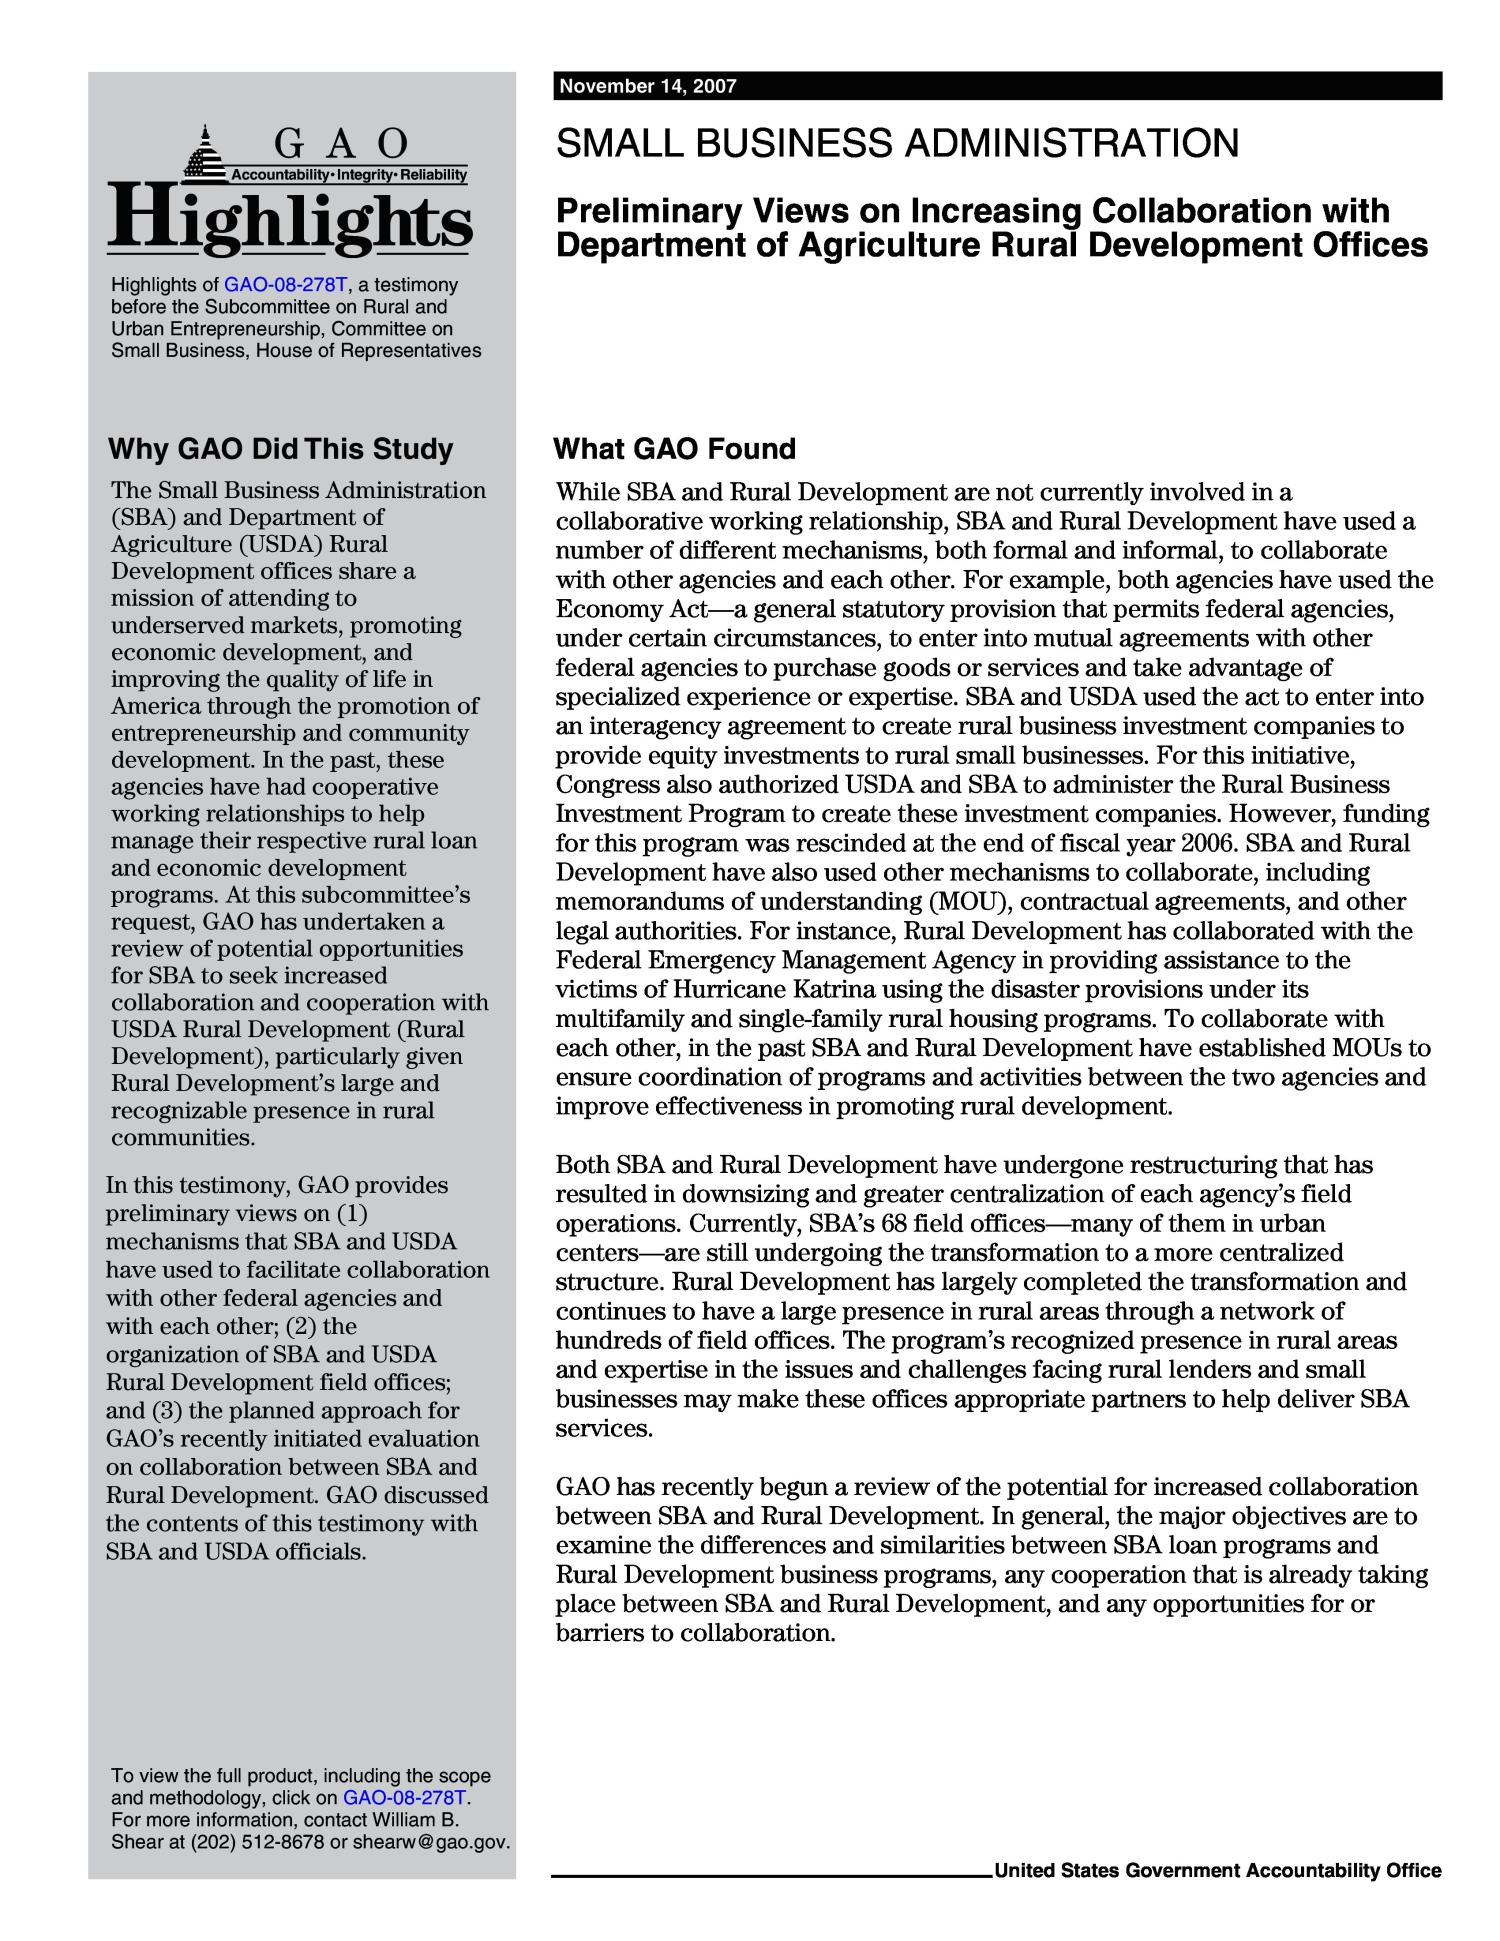 Small Business Administration: Preliminary Views on Increasing Collaboration with Department of Agriculture Rural Development Offices                                                                                                      [Sequence #]: 2 of 15